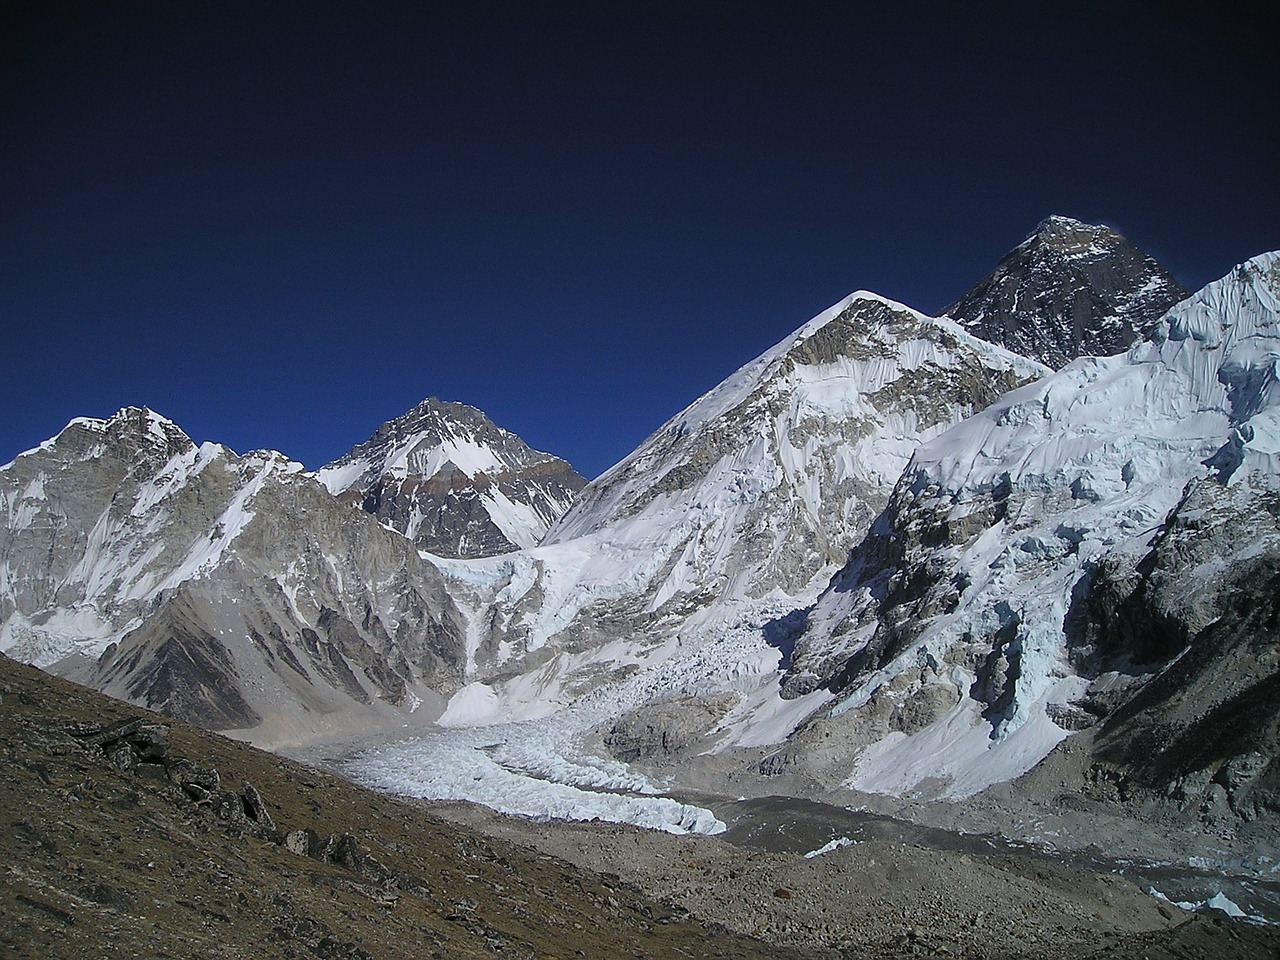 nepal,himalayas,mountain,everest,mountains,western,cwm,free pictures, free photos, free images, royalty free, free illustrations, public domain